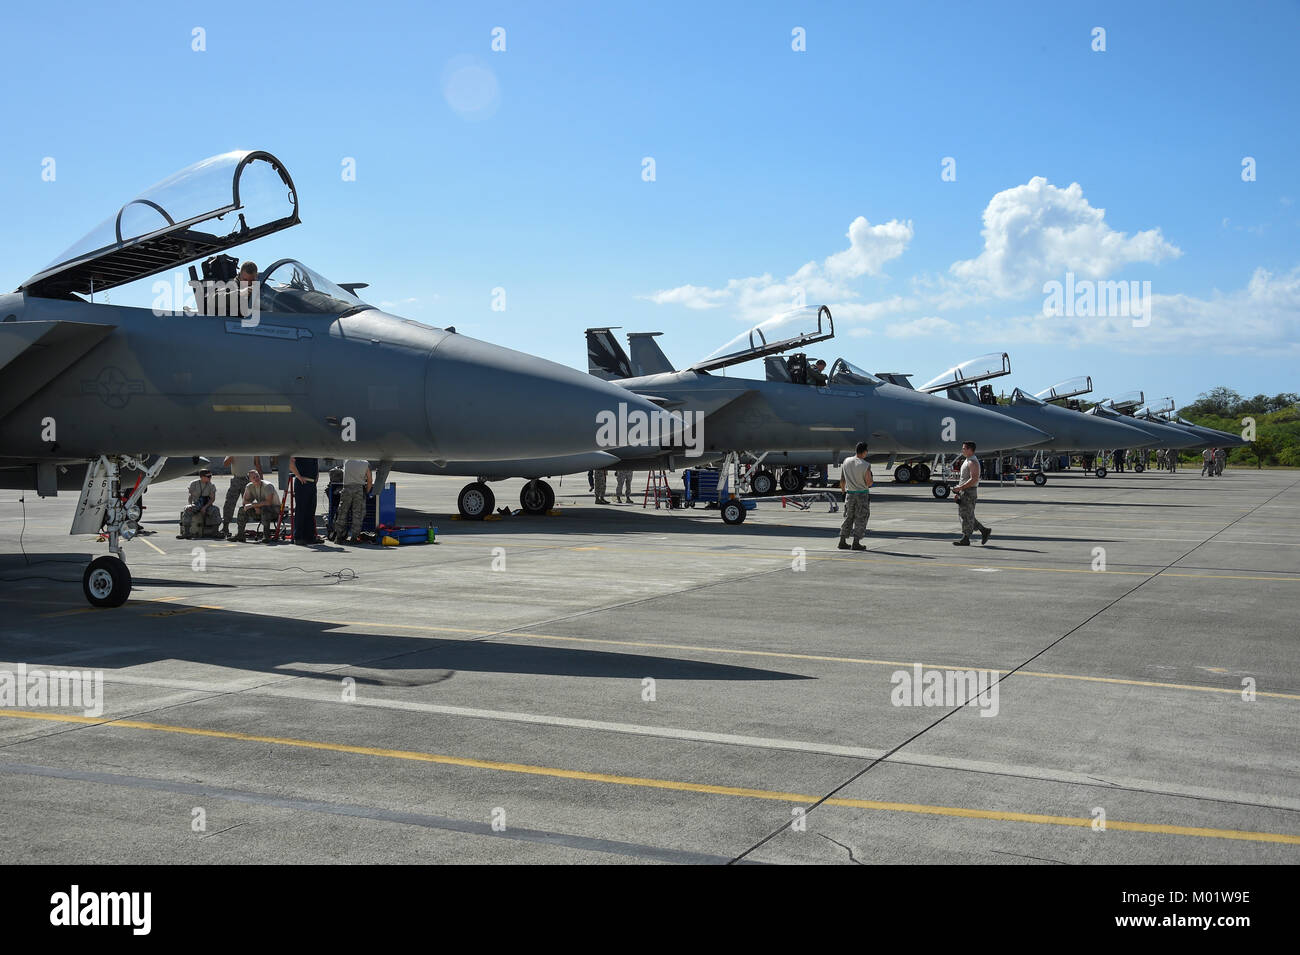 U.S. Air Force F-15C Eagle fighter jets from California Air National Guard's 144th Fighter Wing. - Stock Image